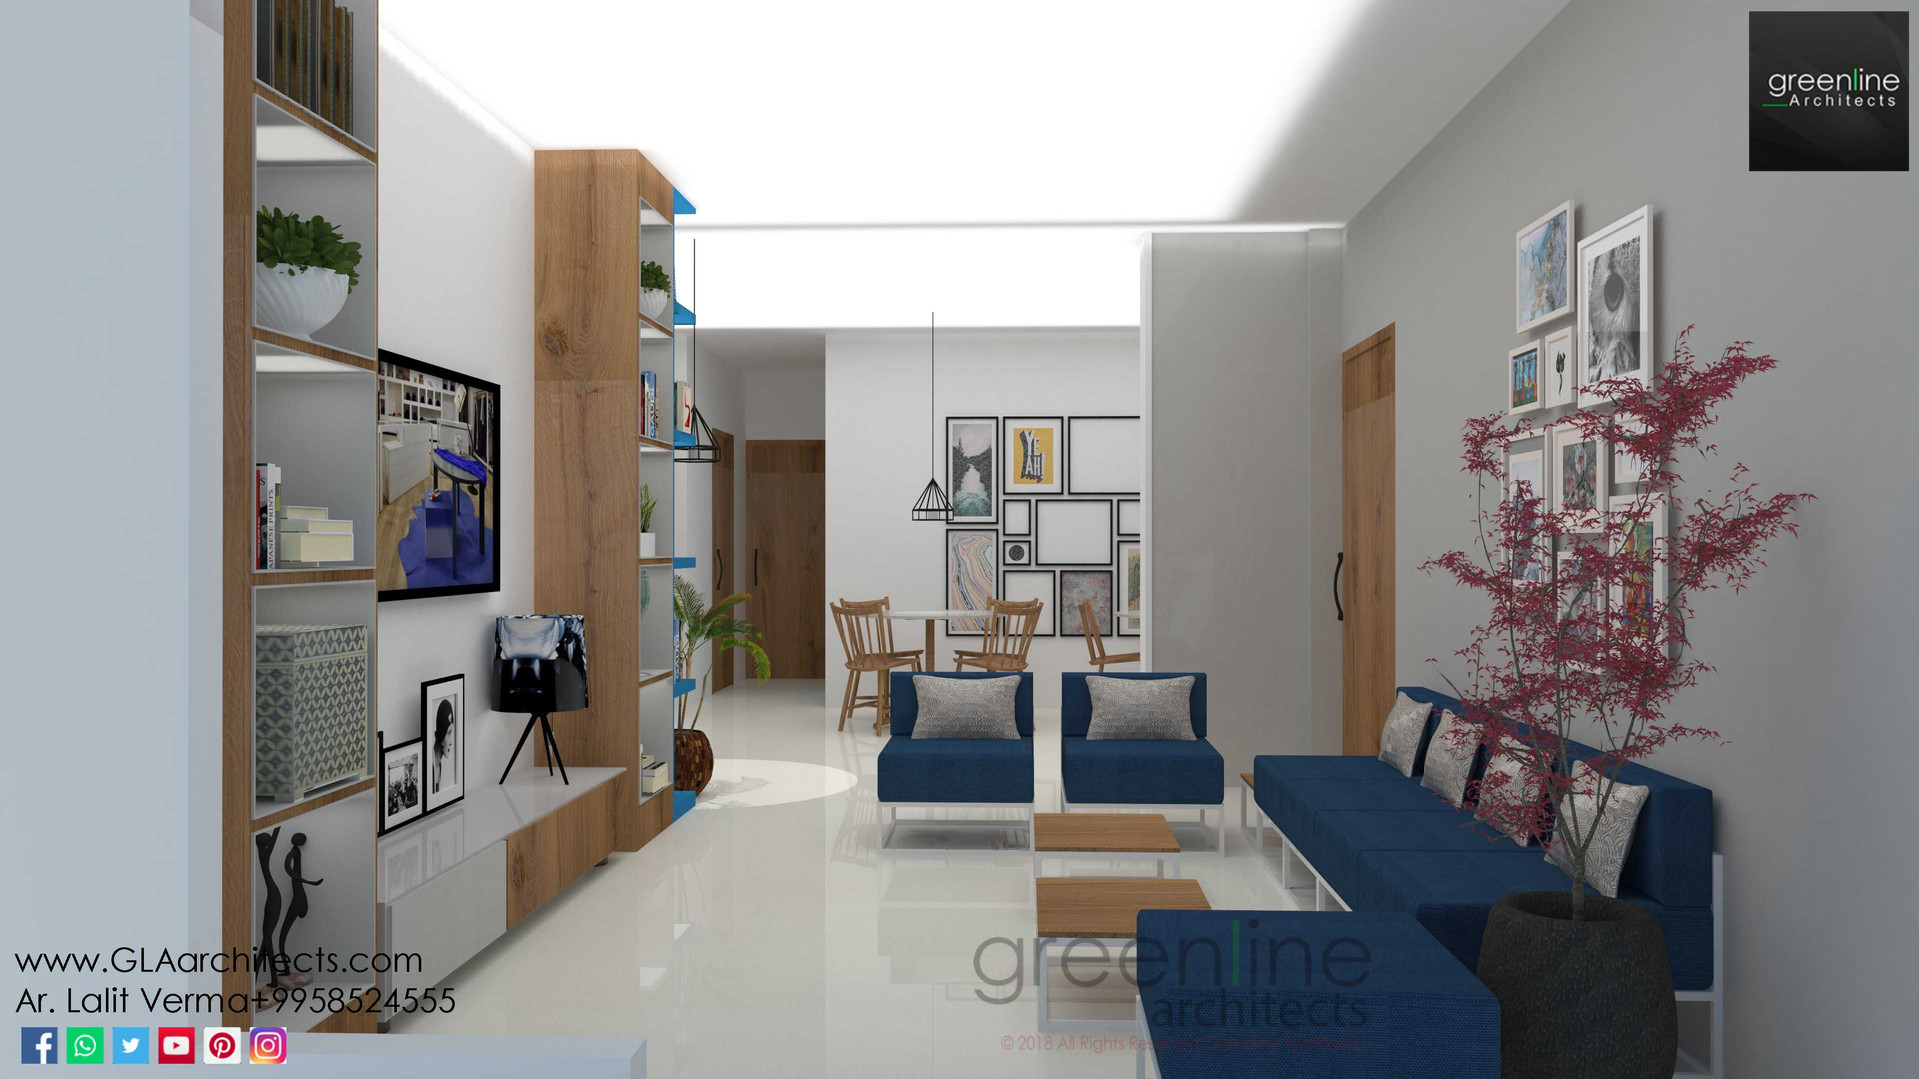 Livork_Hostel_Room_Interior_Design (4).j